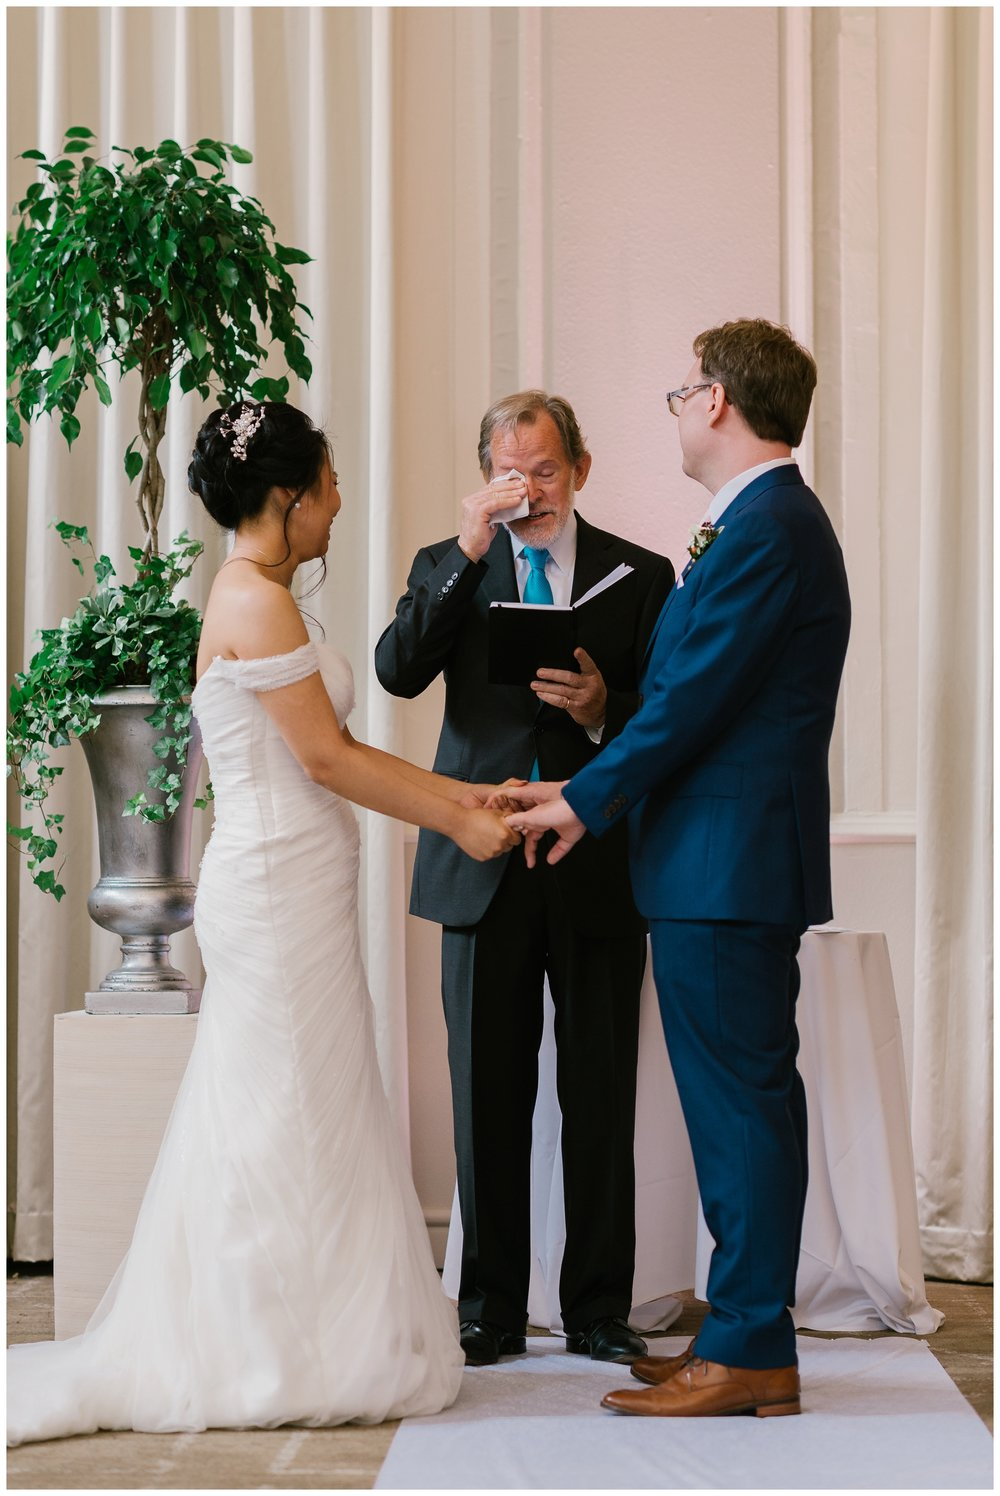 Rebecca_Shehorn_Photography_Indianapolis_Wedding_Photographer_8136.jpg